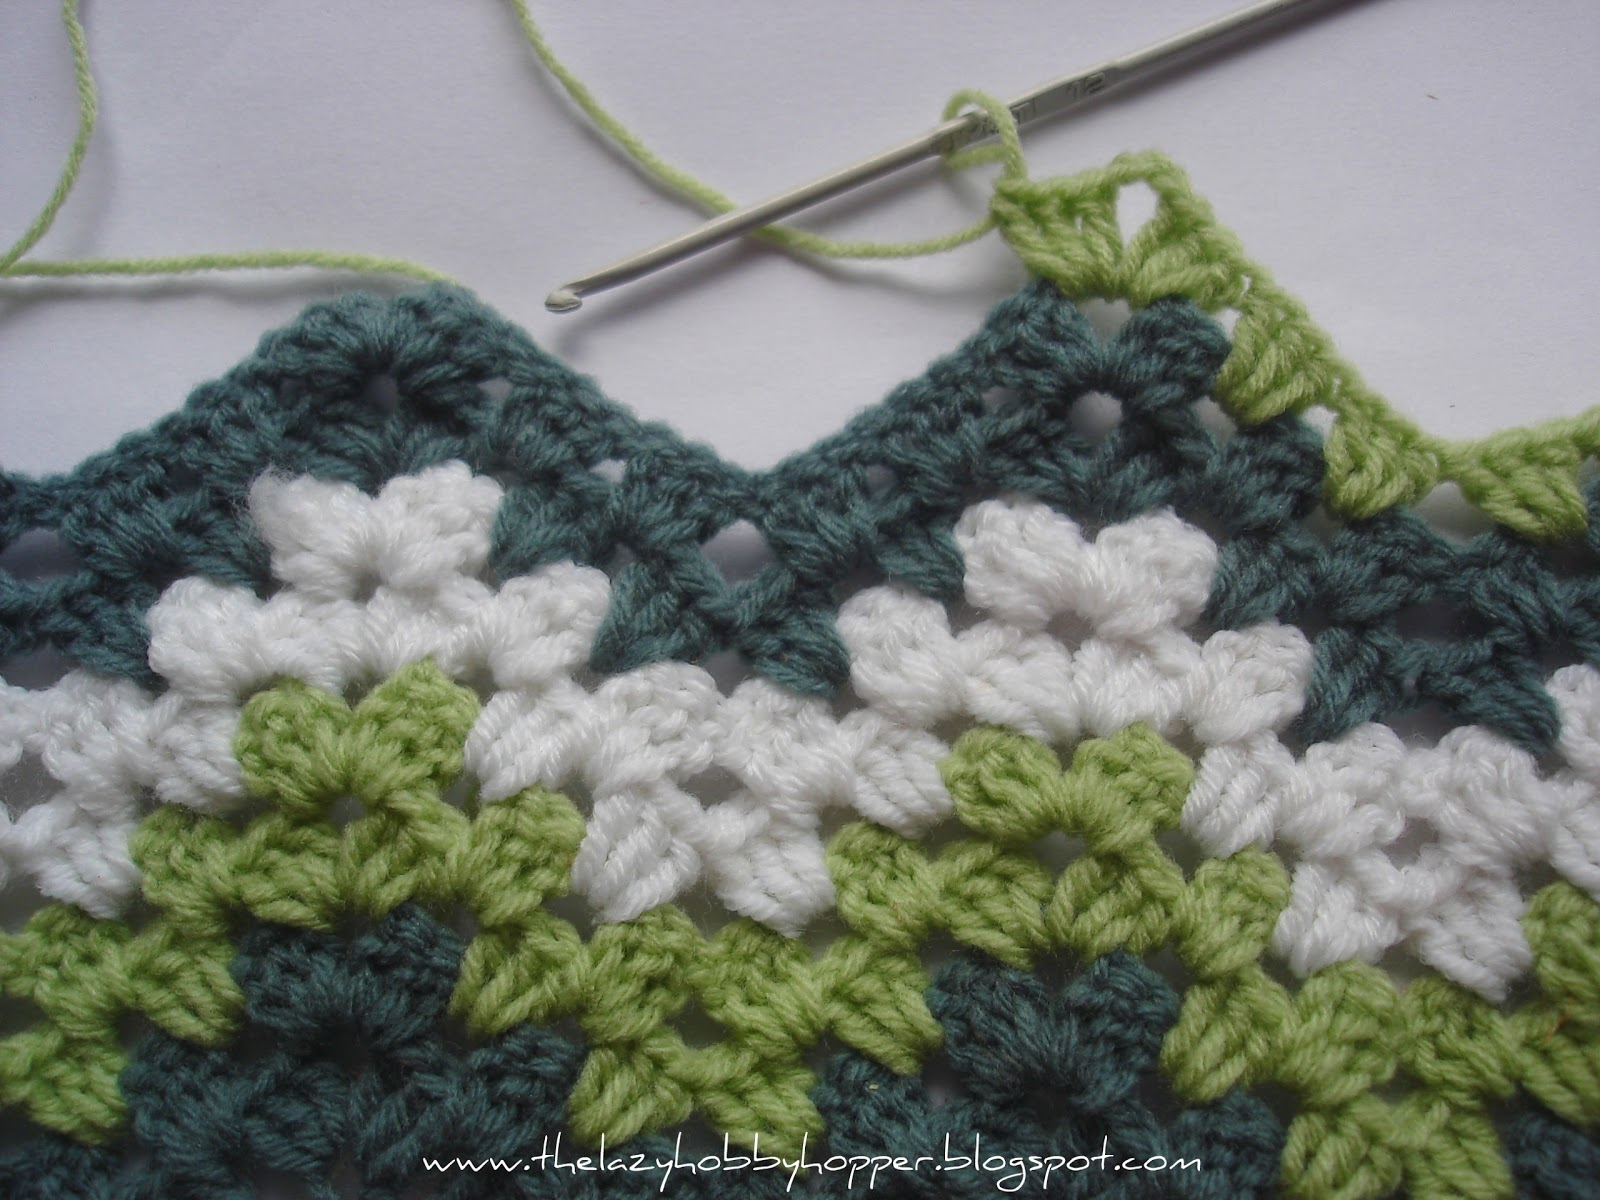 Crochet Ripple Pattern : ... many of you who can crochet fairly well may not know how to crochet a